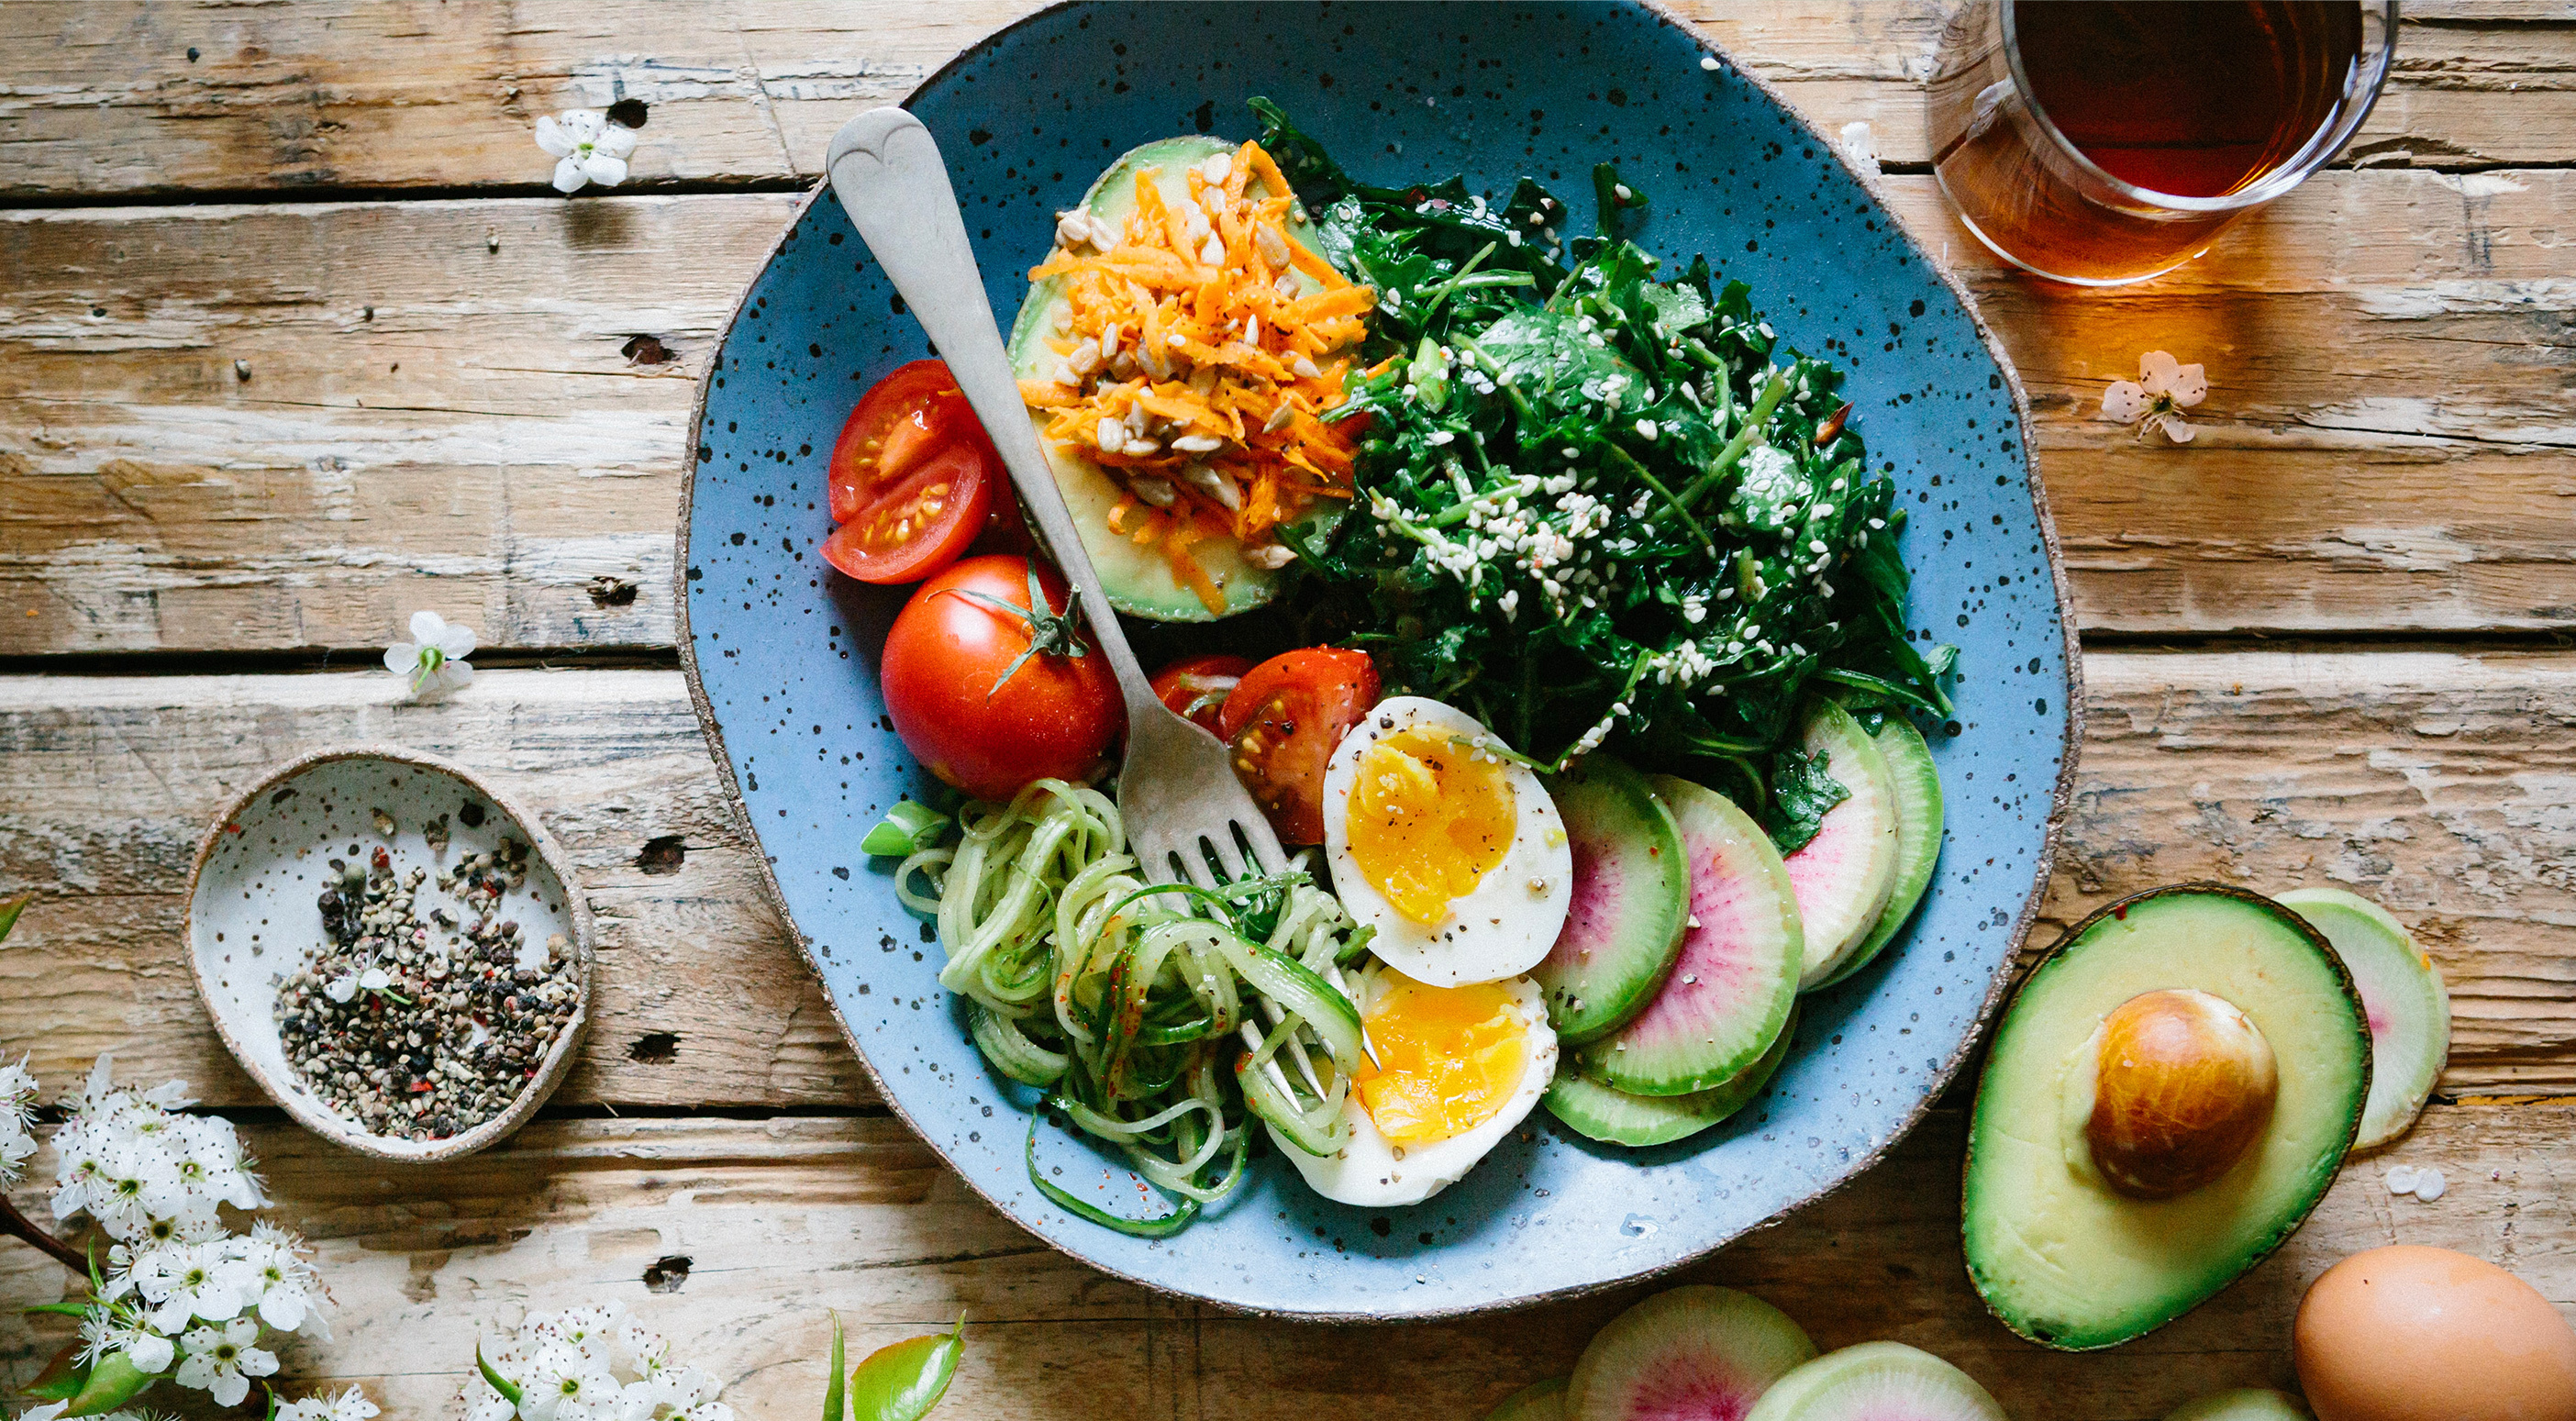 A plate full of healthy vegetables and eggs